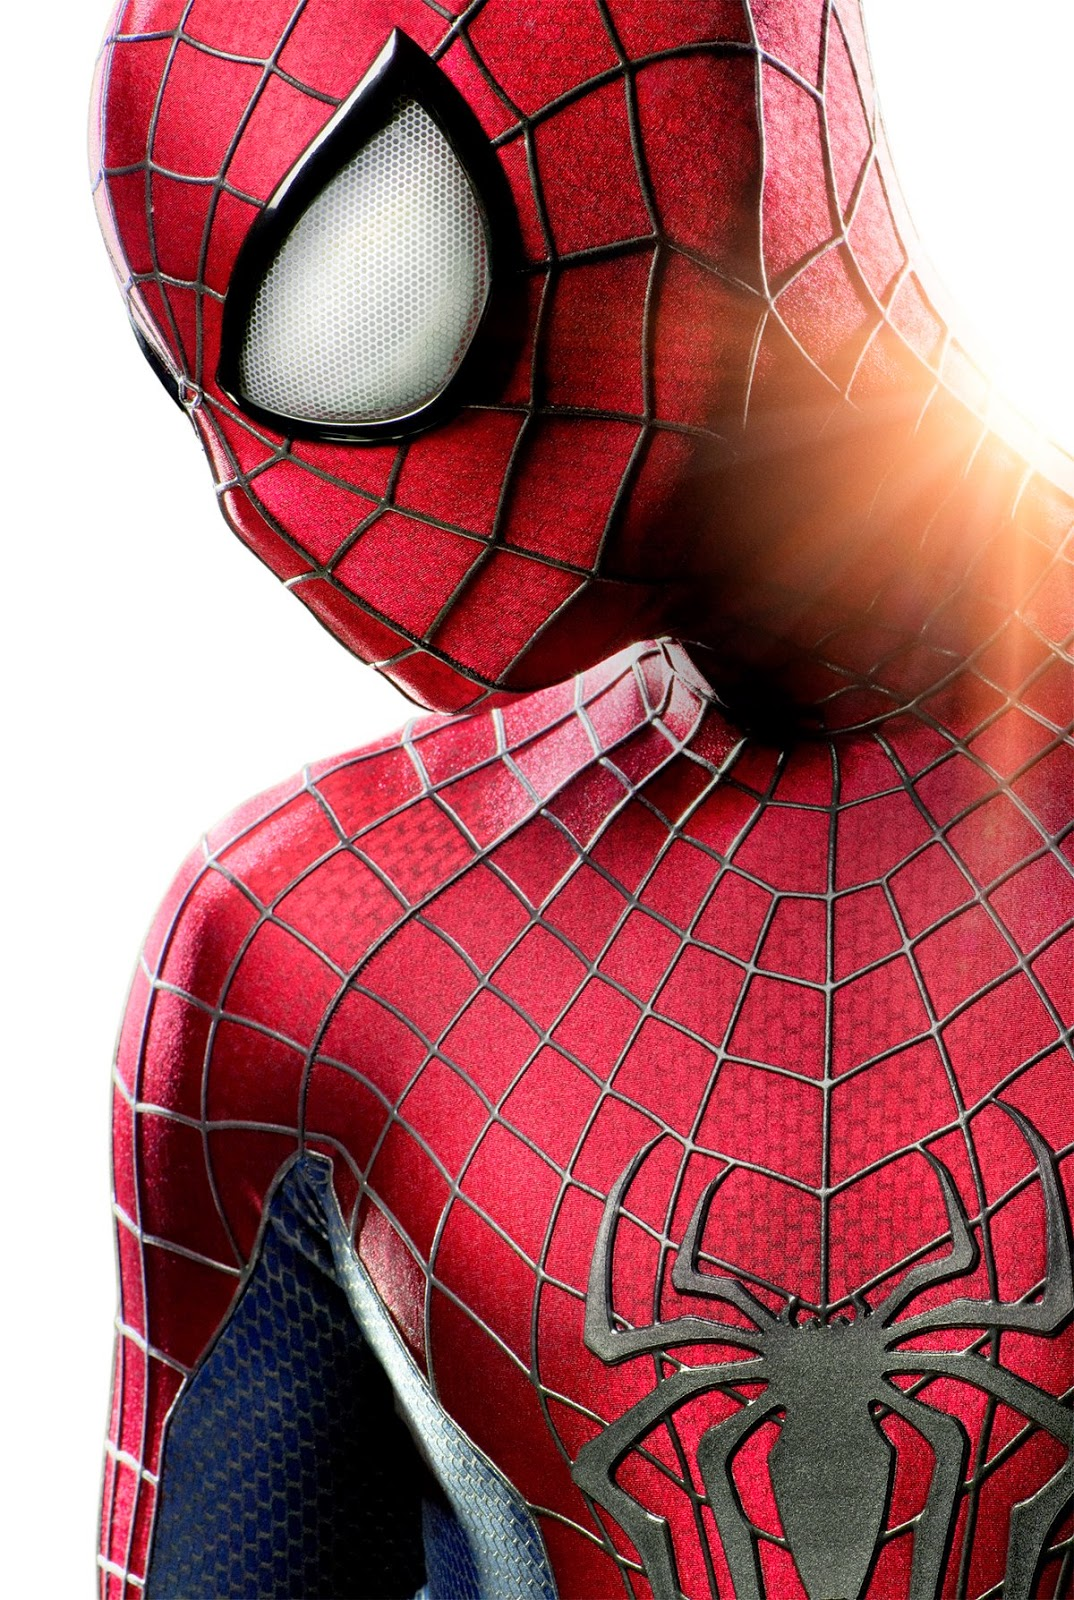 greg's blog of clue-by-fours: the amazing spider-man 2